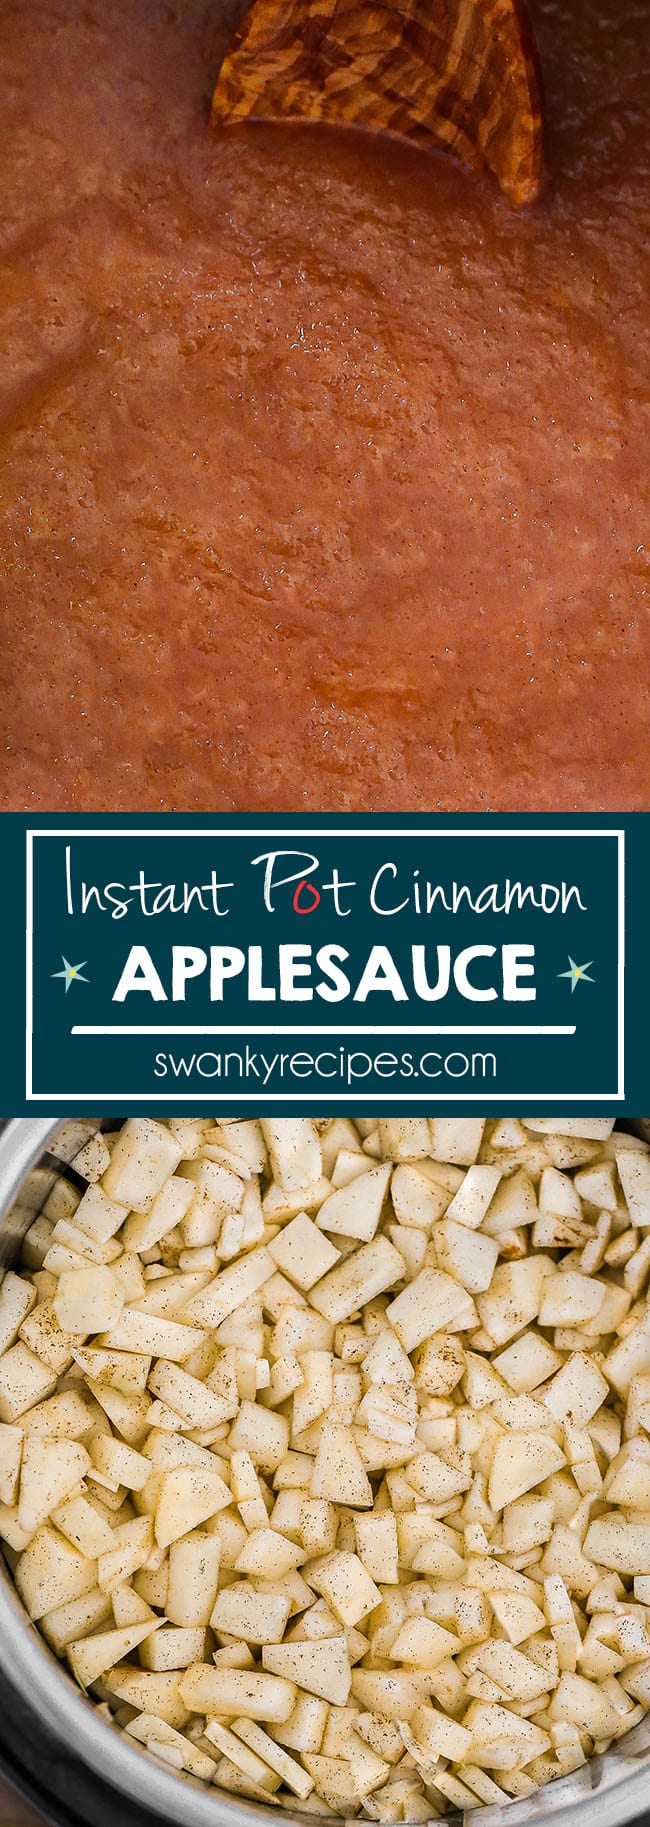 Instant Pot Applesauce - Easy 9-minute applesauce recipe made in the Instant Pot pressure cooker with just 5-ingredients. A classic smooth texture with the perfect balance of sweetness.